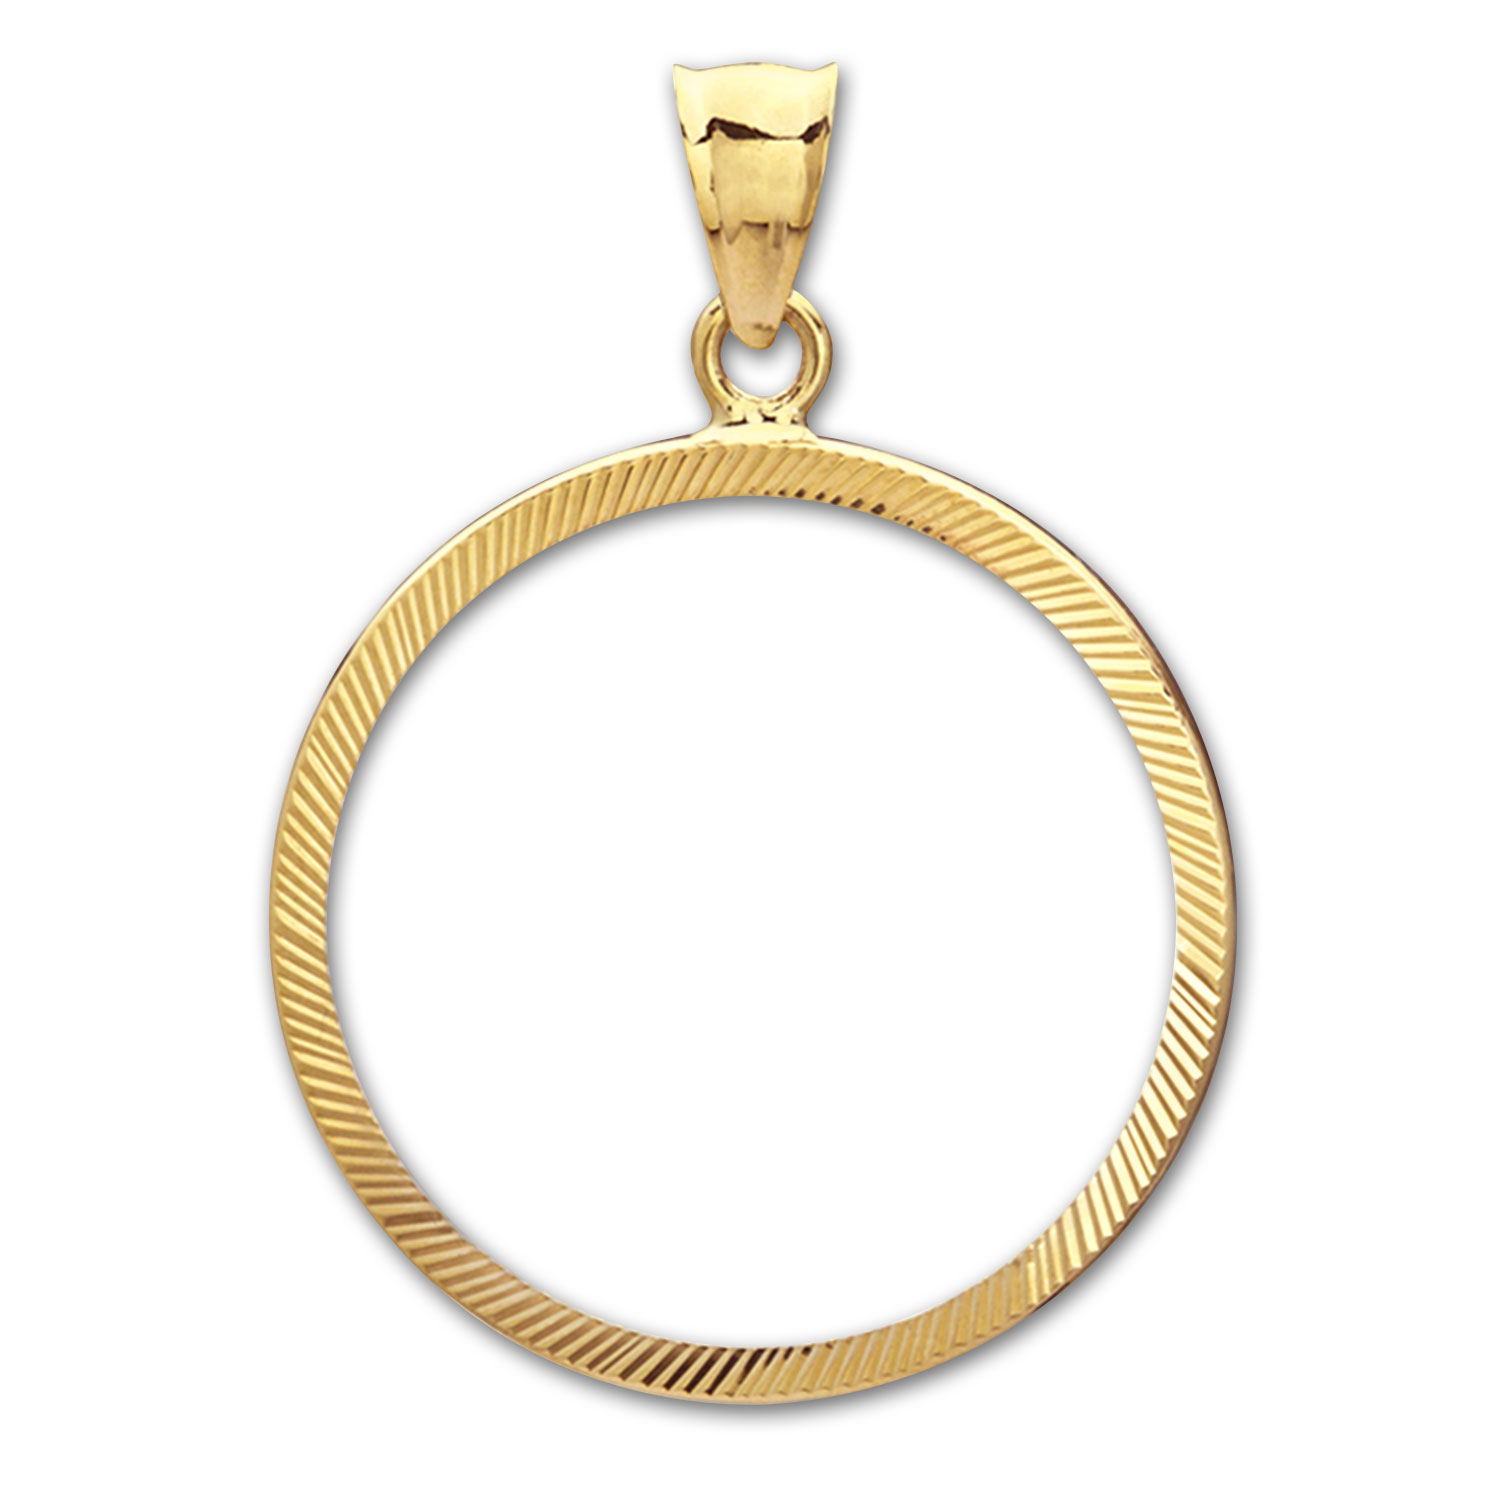 14K Gold Prong Diamond-Cut Coin Bezel - 22 millimeter